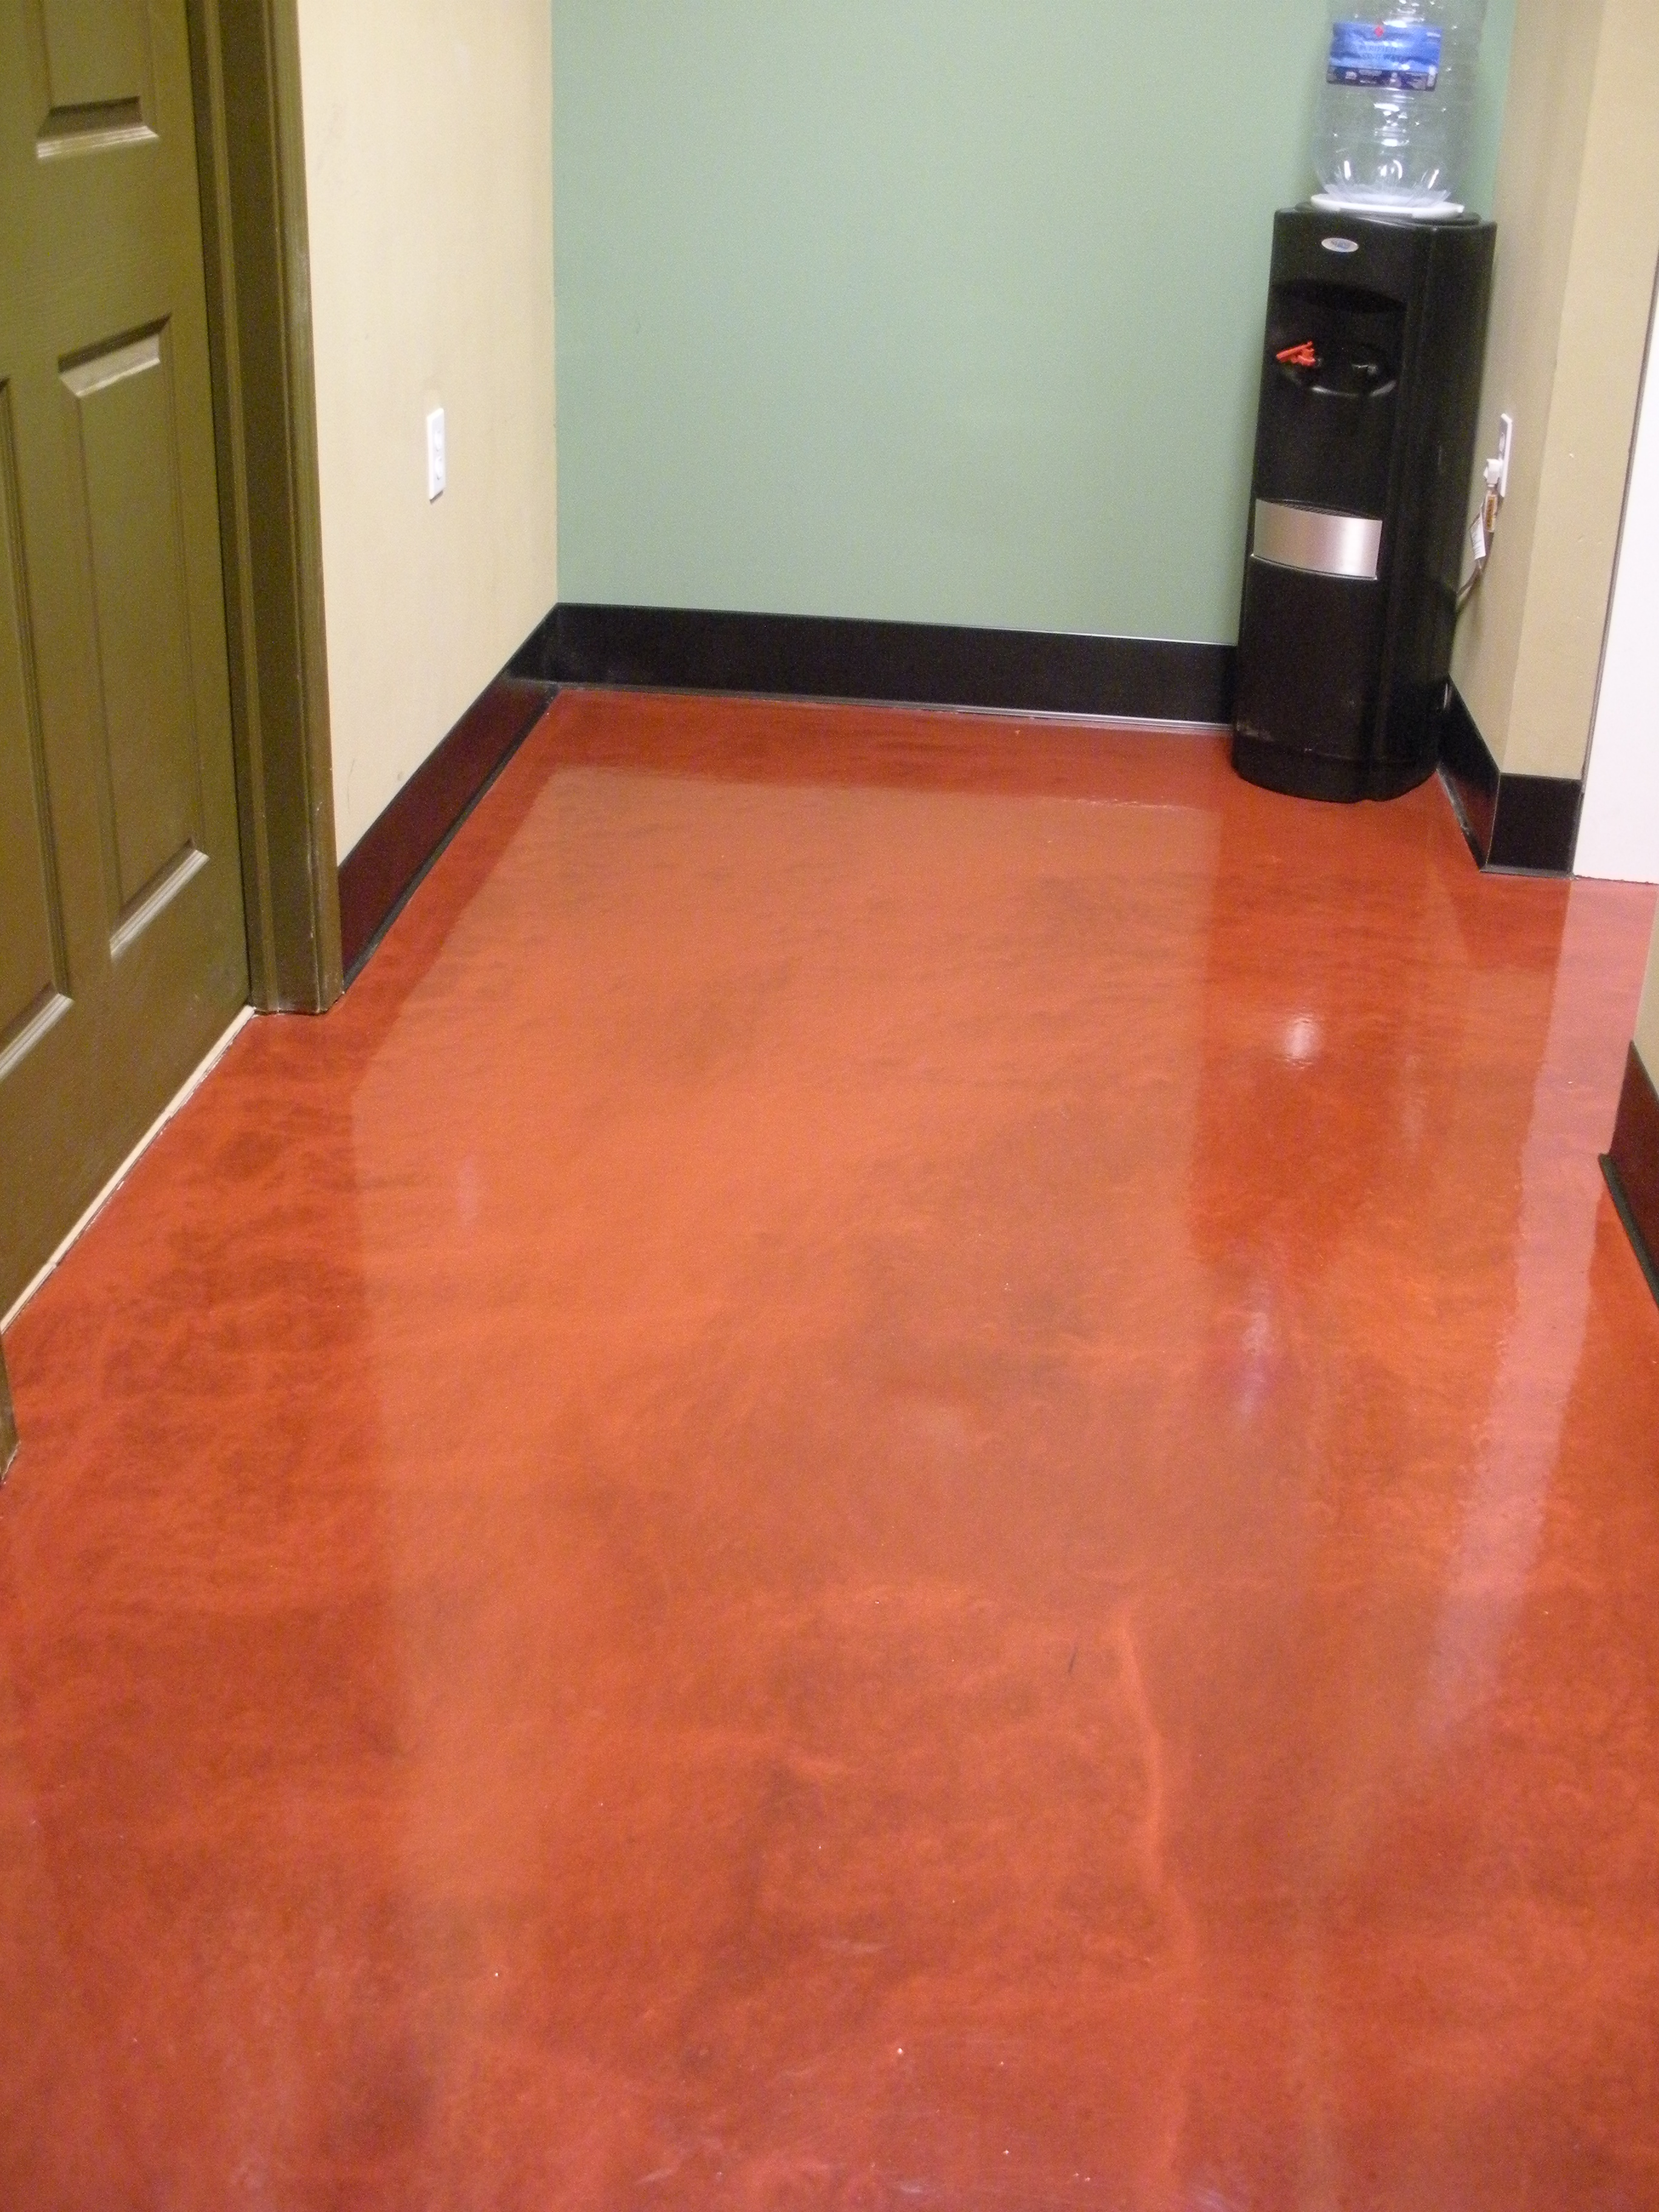 Whats New In Concrete Flooring - What's the best garage floor paint